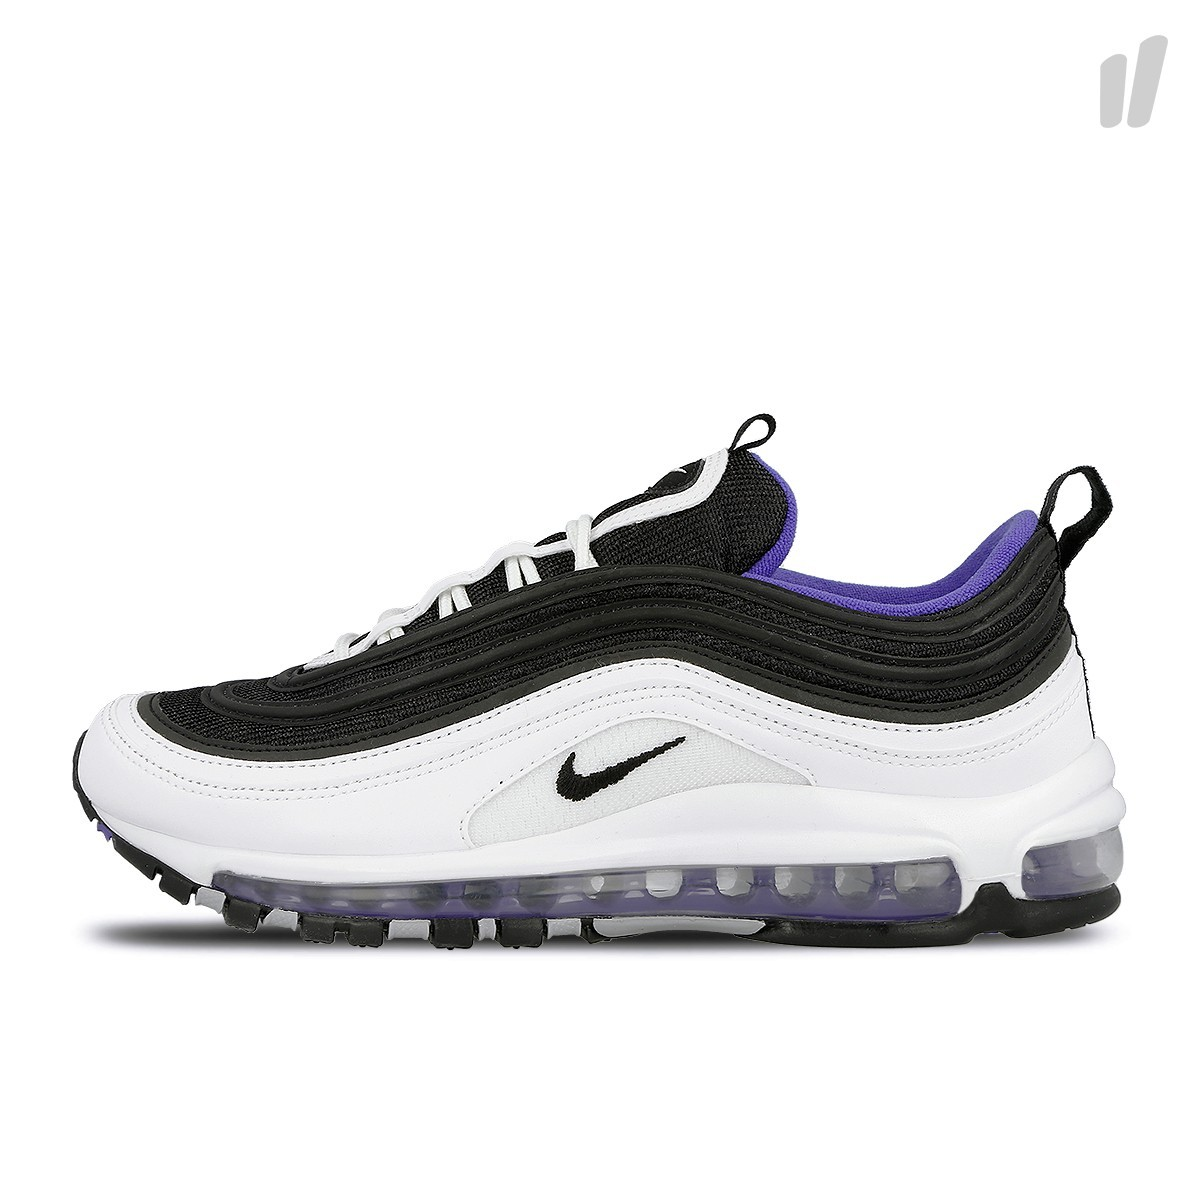 low priced 57a5d 0bf88 coupon code air max 97 sz 11.5 f6f5d 3ddf8